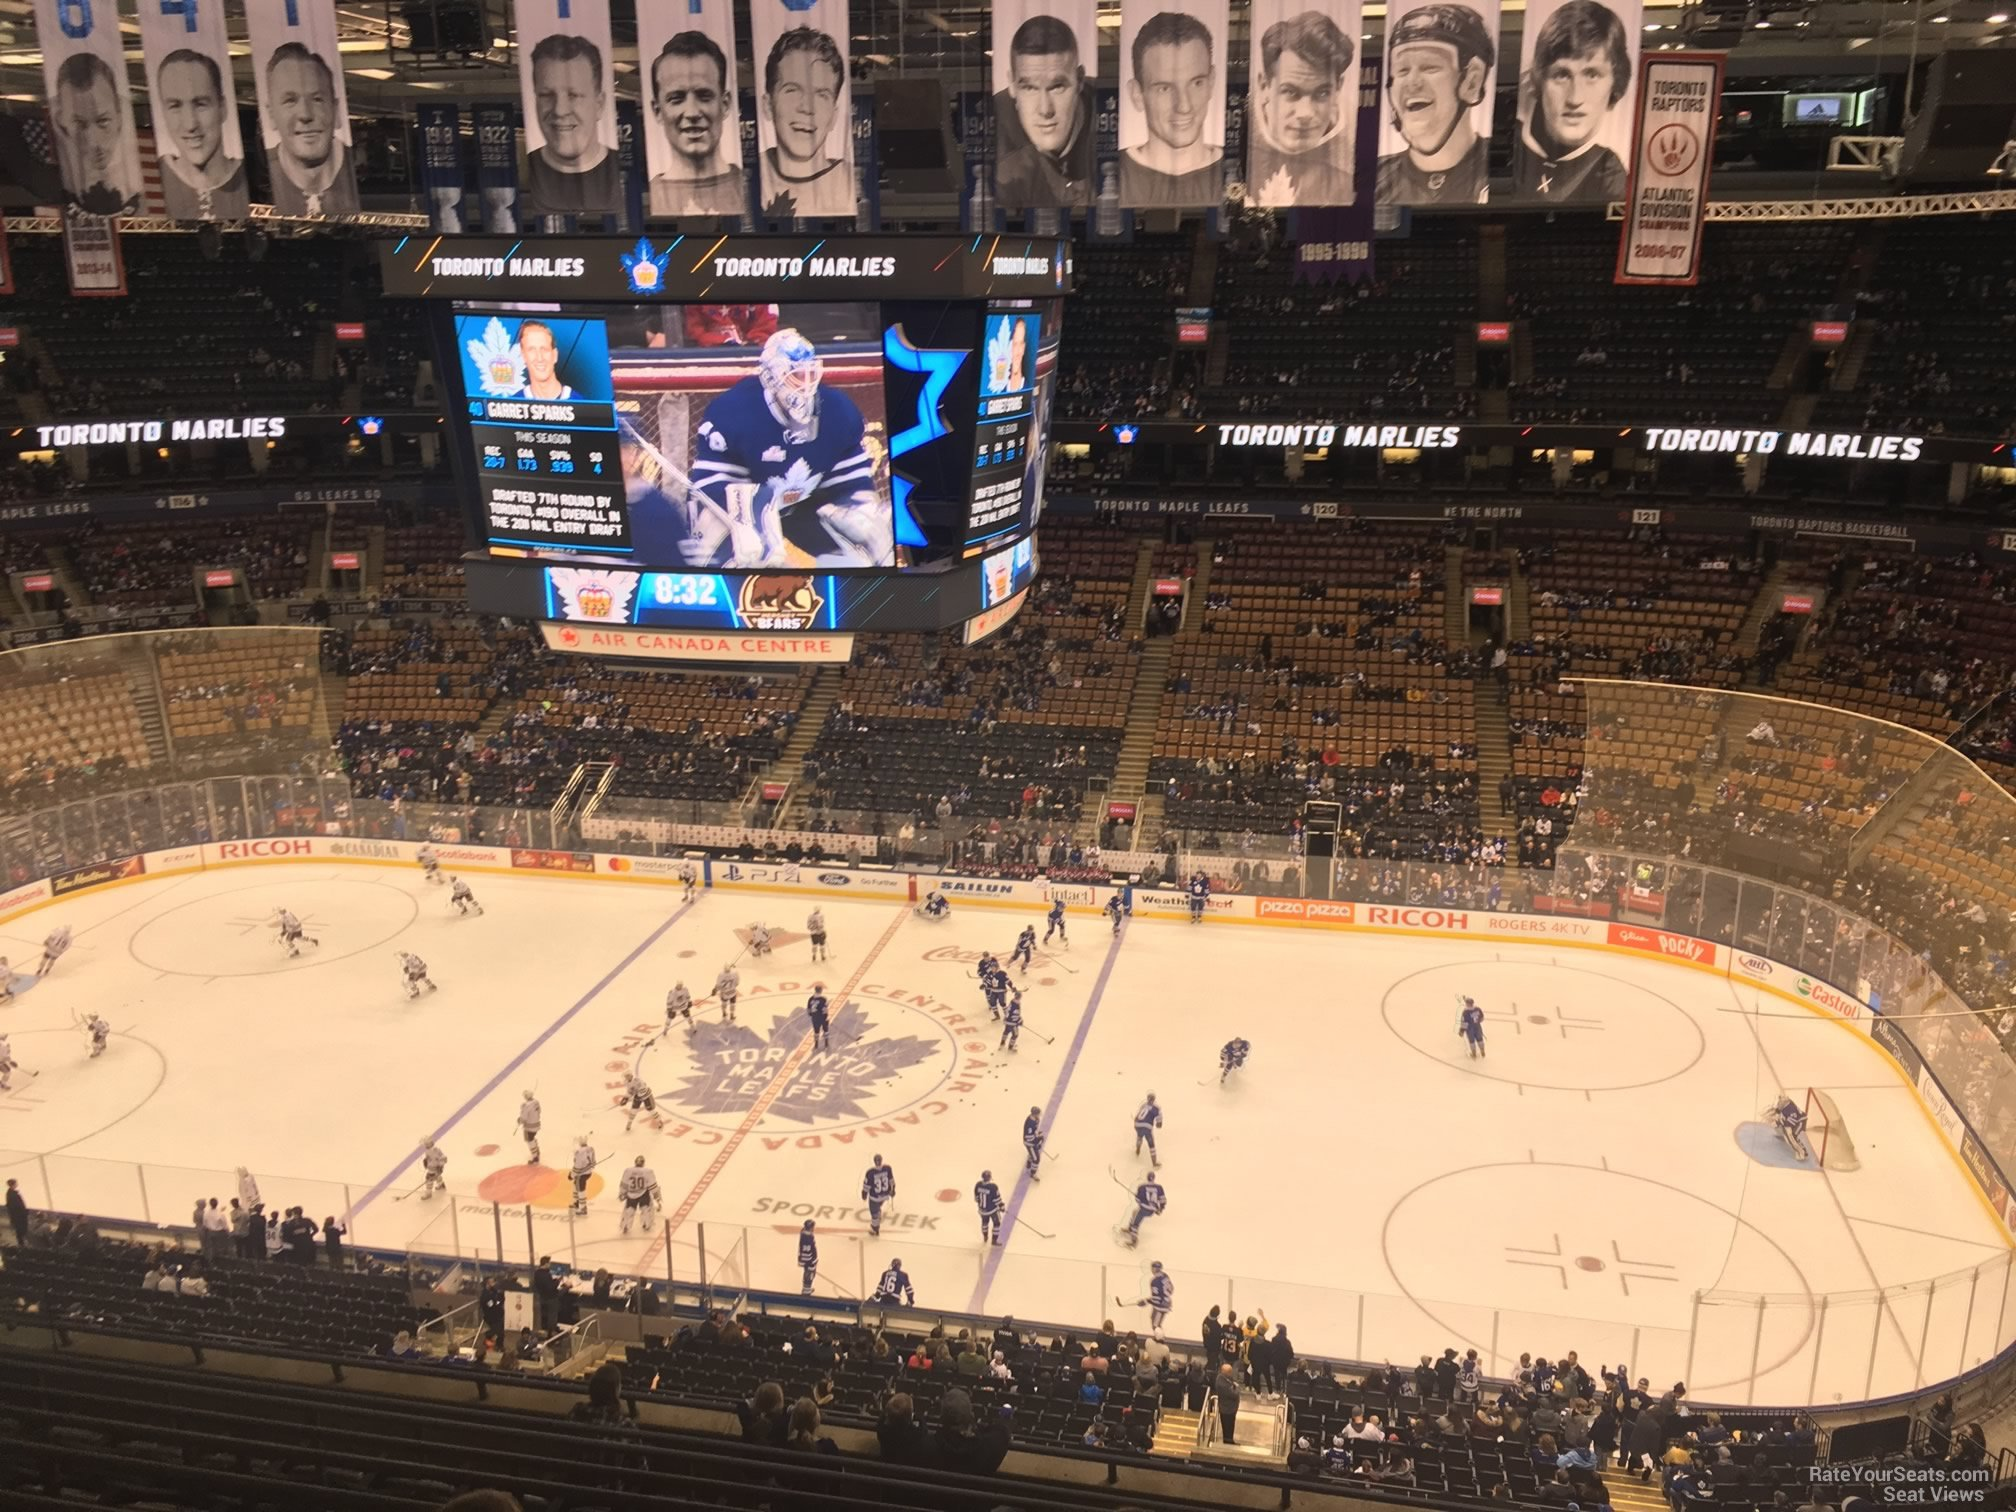 Toronto Maple Leafs Seat View for Scotiabank Arena Section 308, Row 10